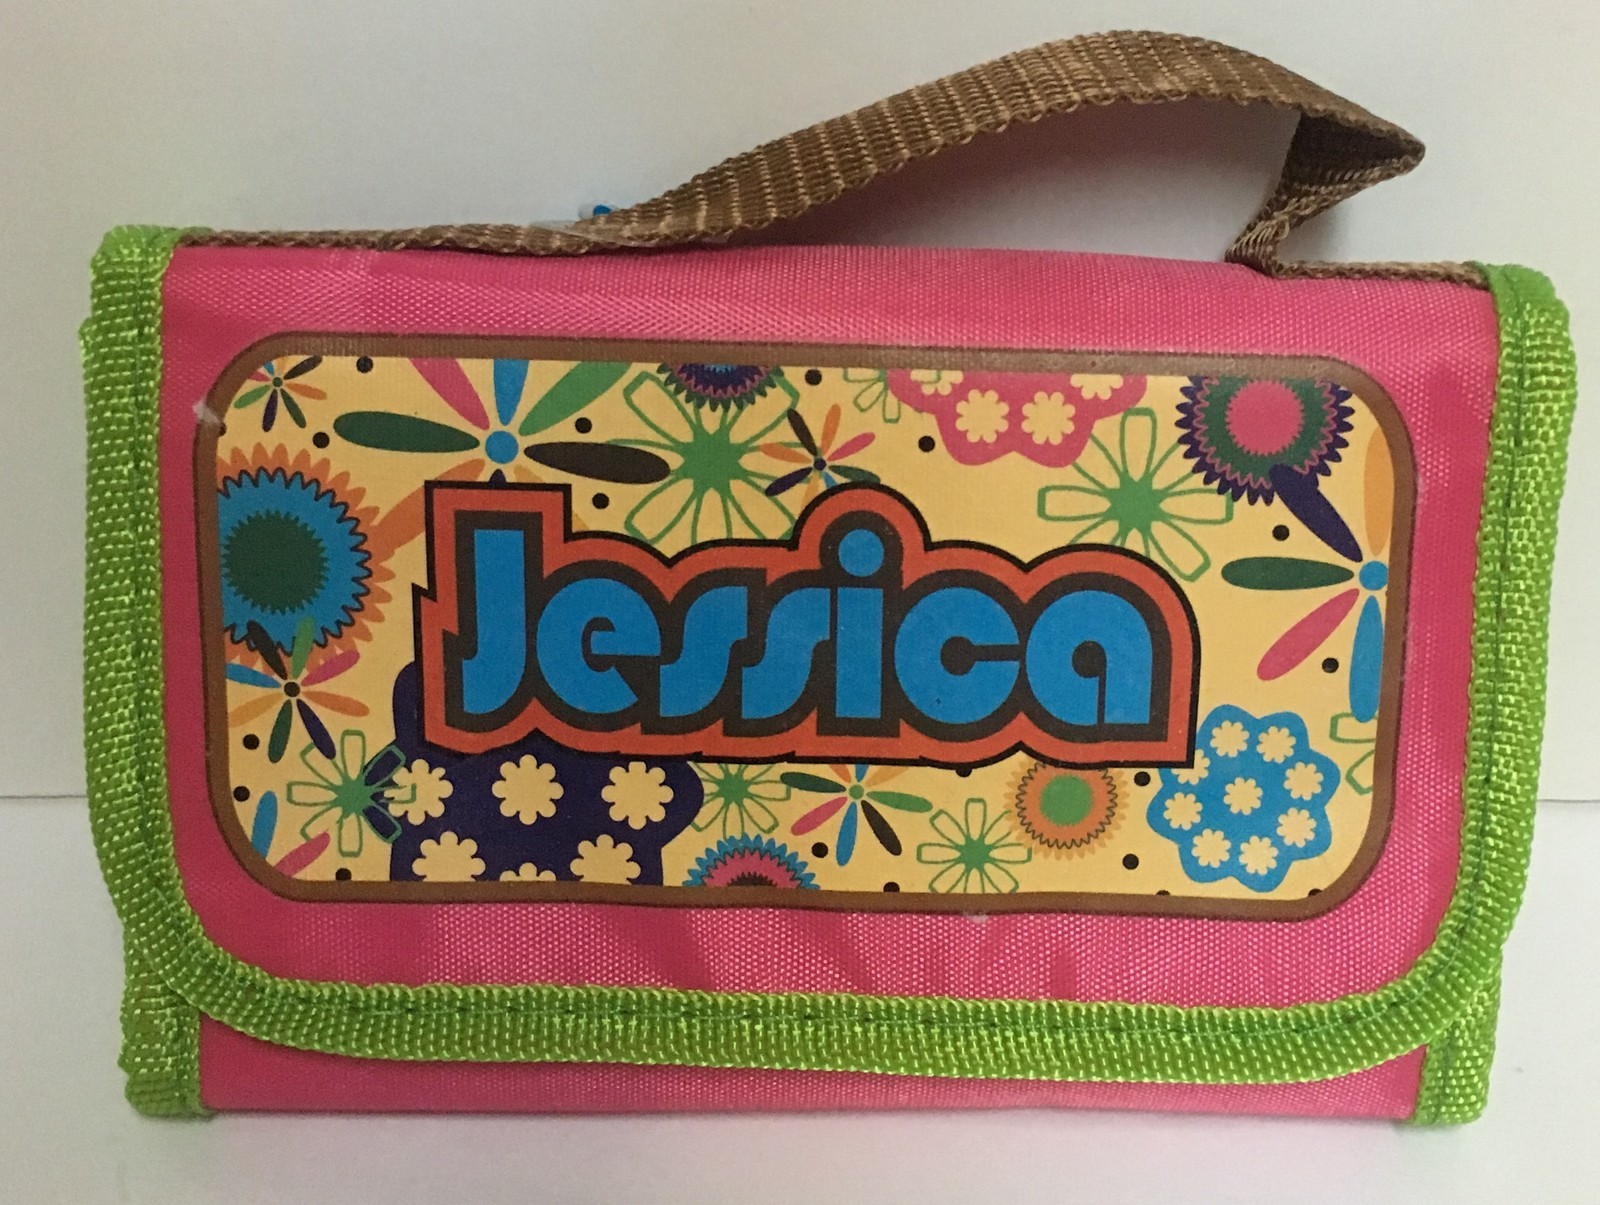 Personalized Insulated Lunch Bag Fold Up JESSICA